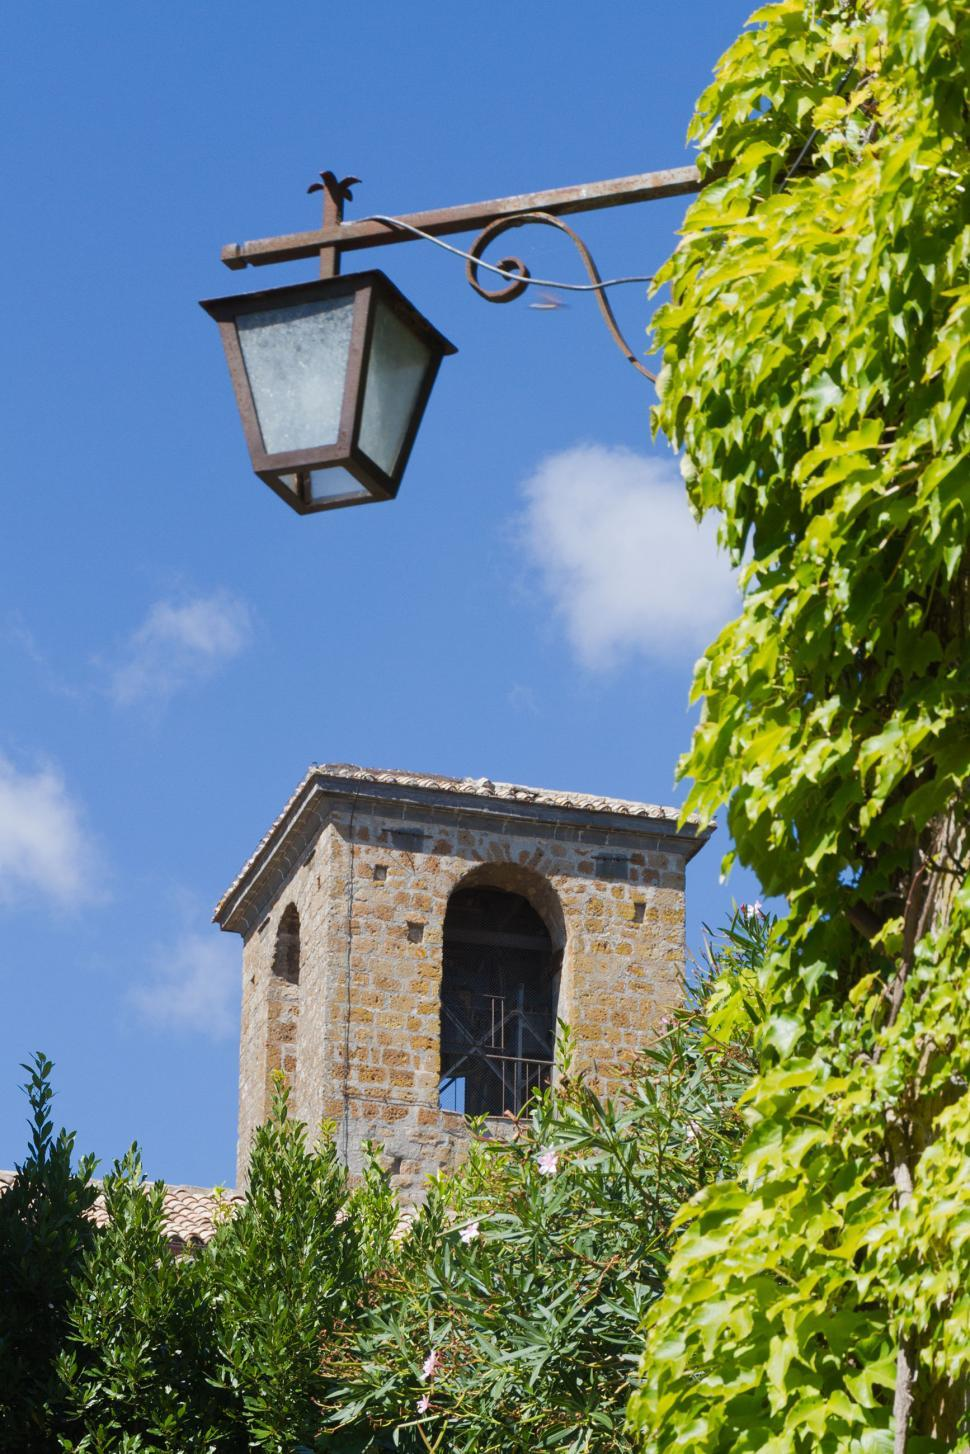 Download Free Stock HD Photo of Street lamp in old city Online